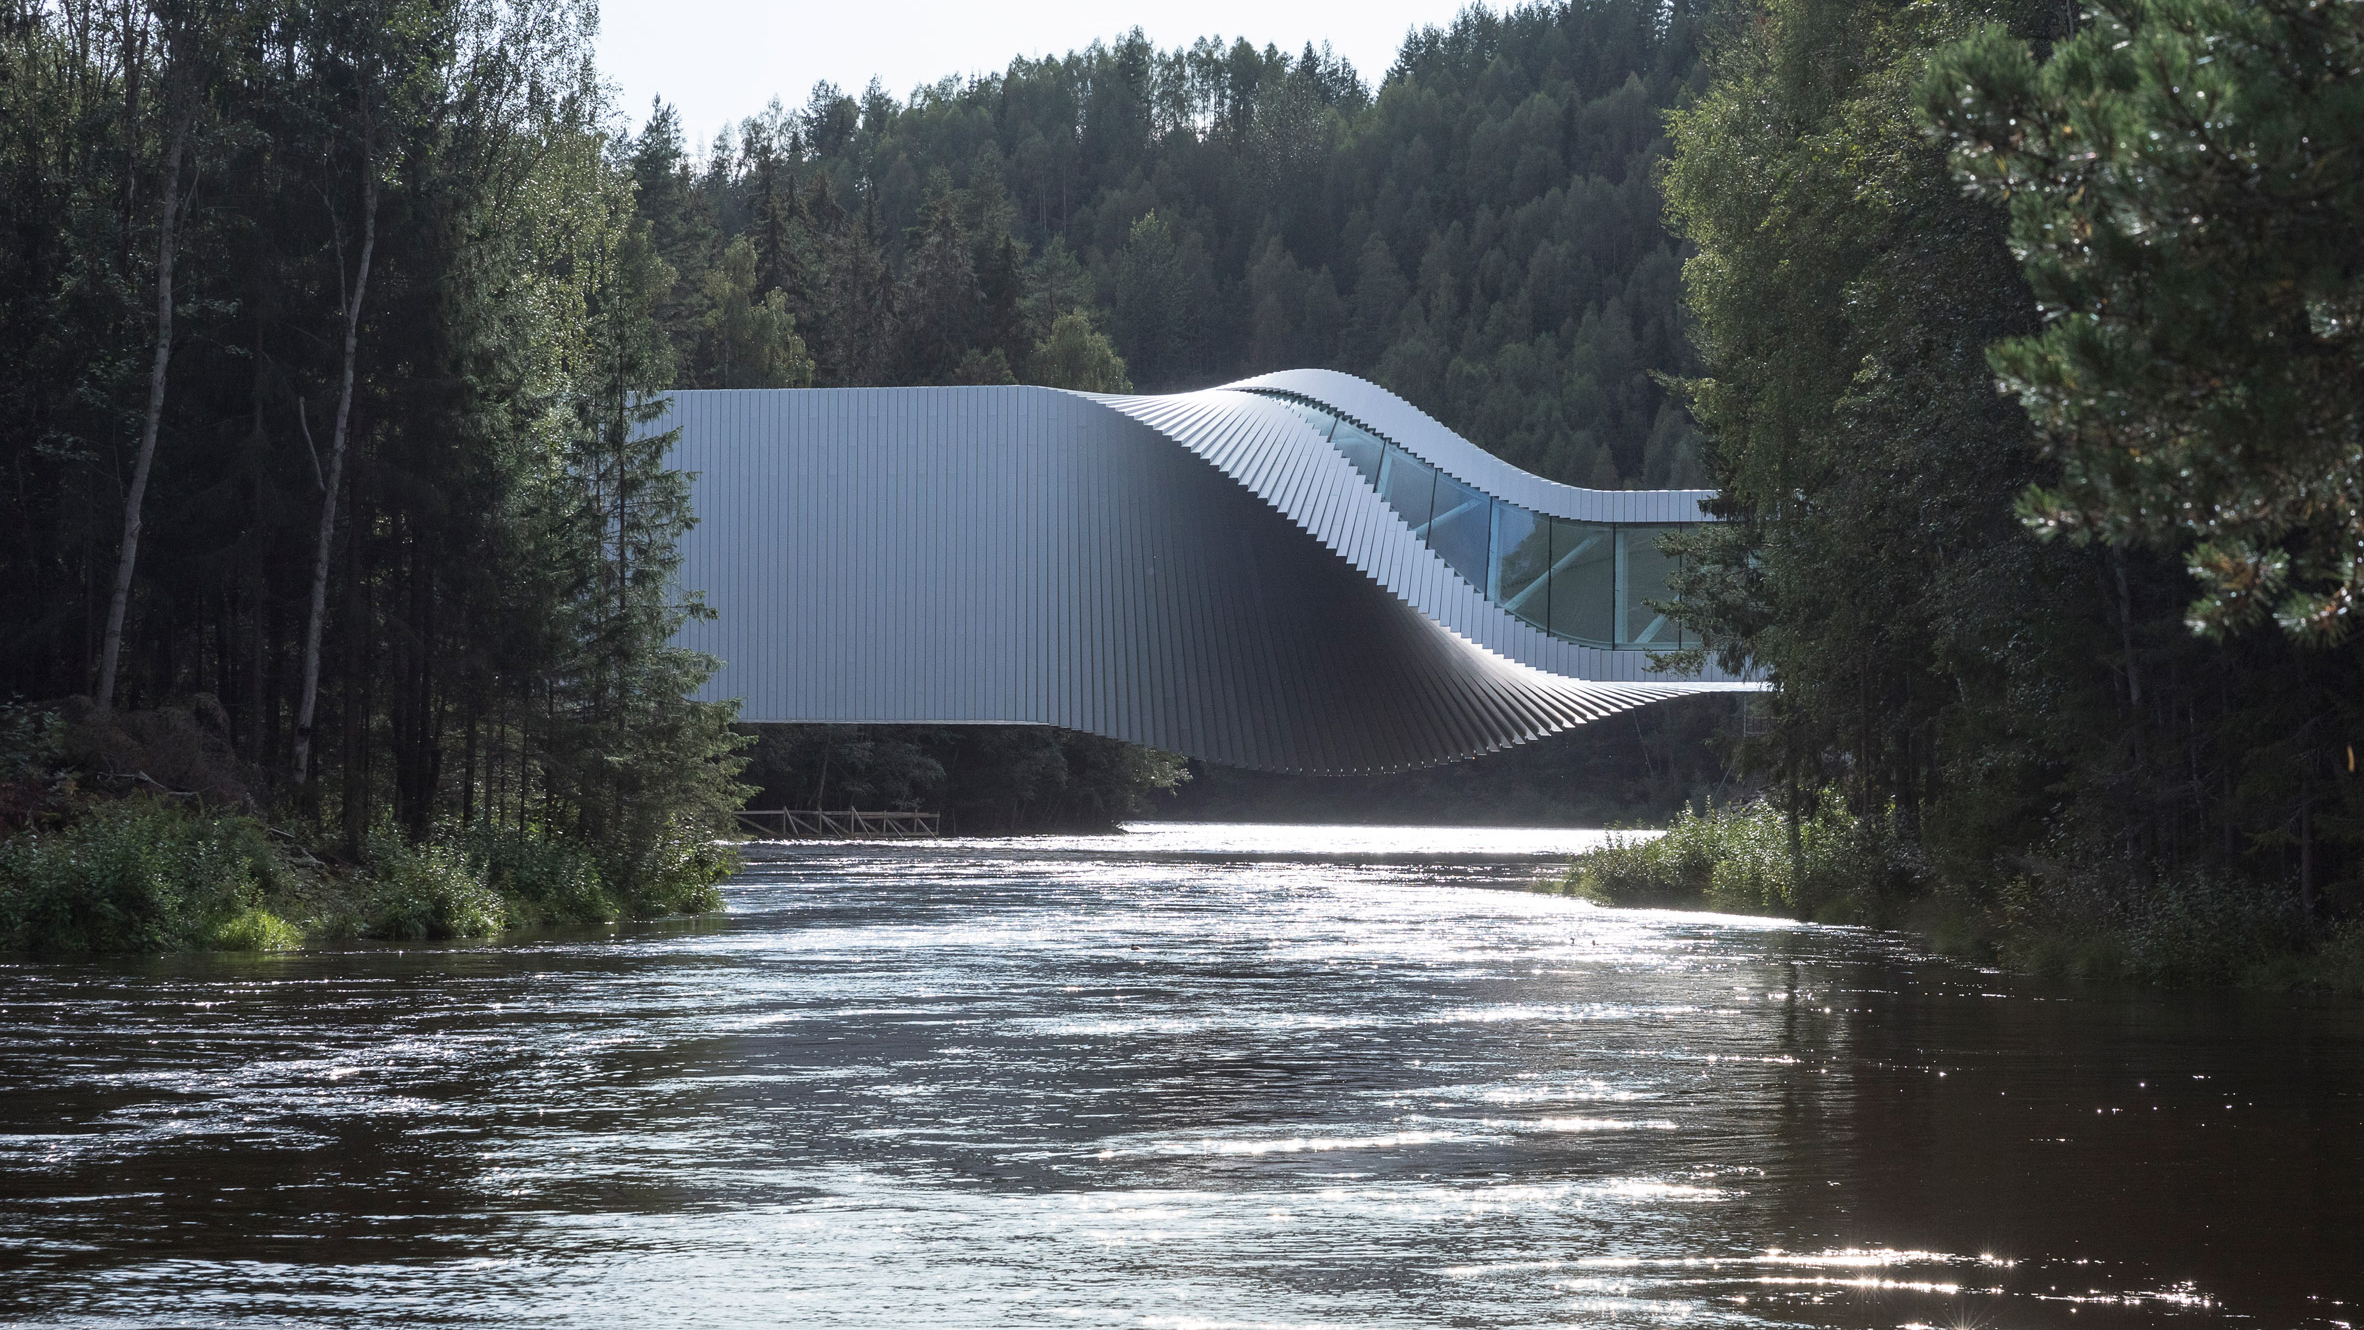 The Twist art gallery at Kistefos sculpture park in Norway, by BIG